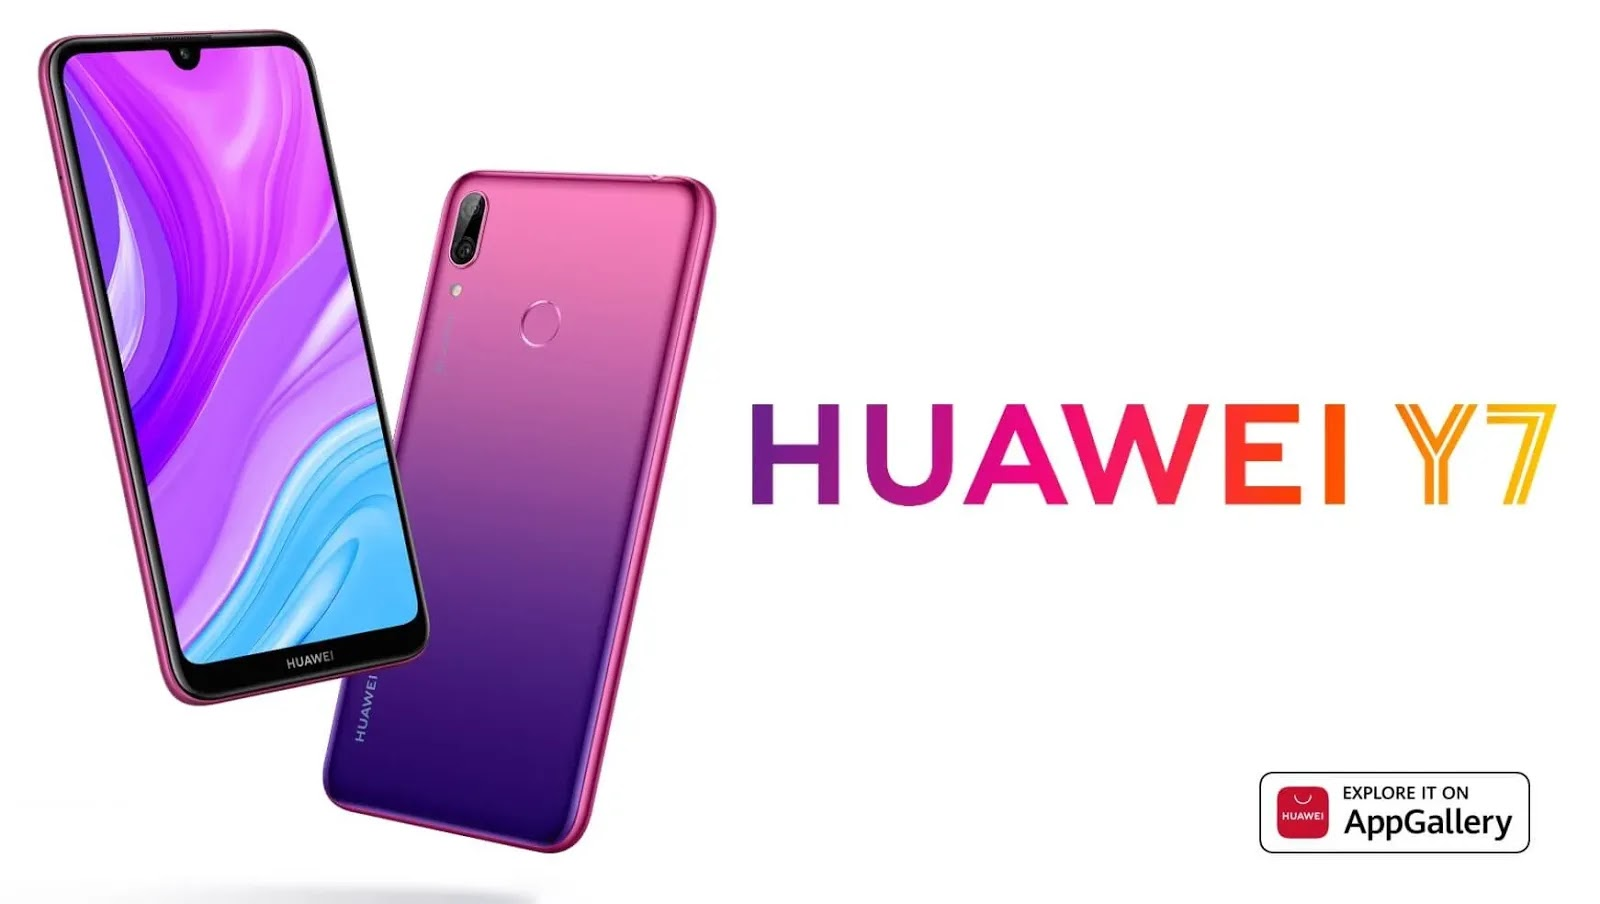 Huawei Y7 Available Soon for Php6,990; Pre-order Yours and Get Php5,198 Worth of Freebies